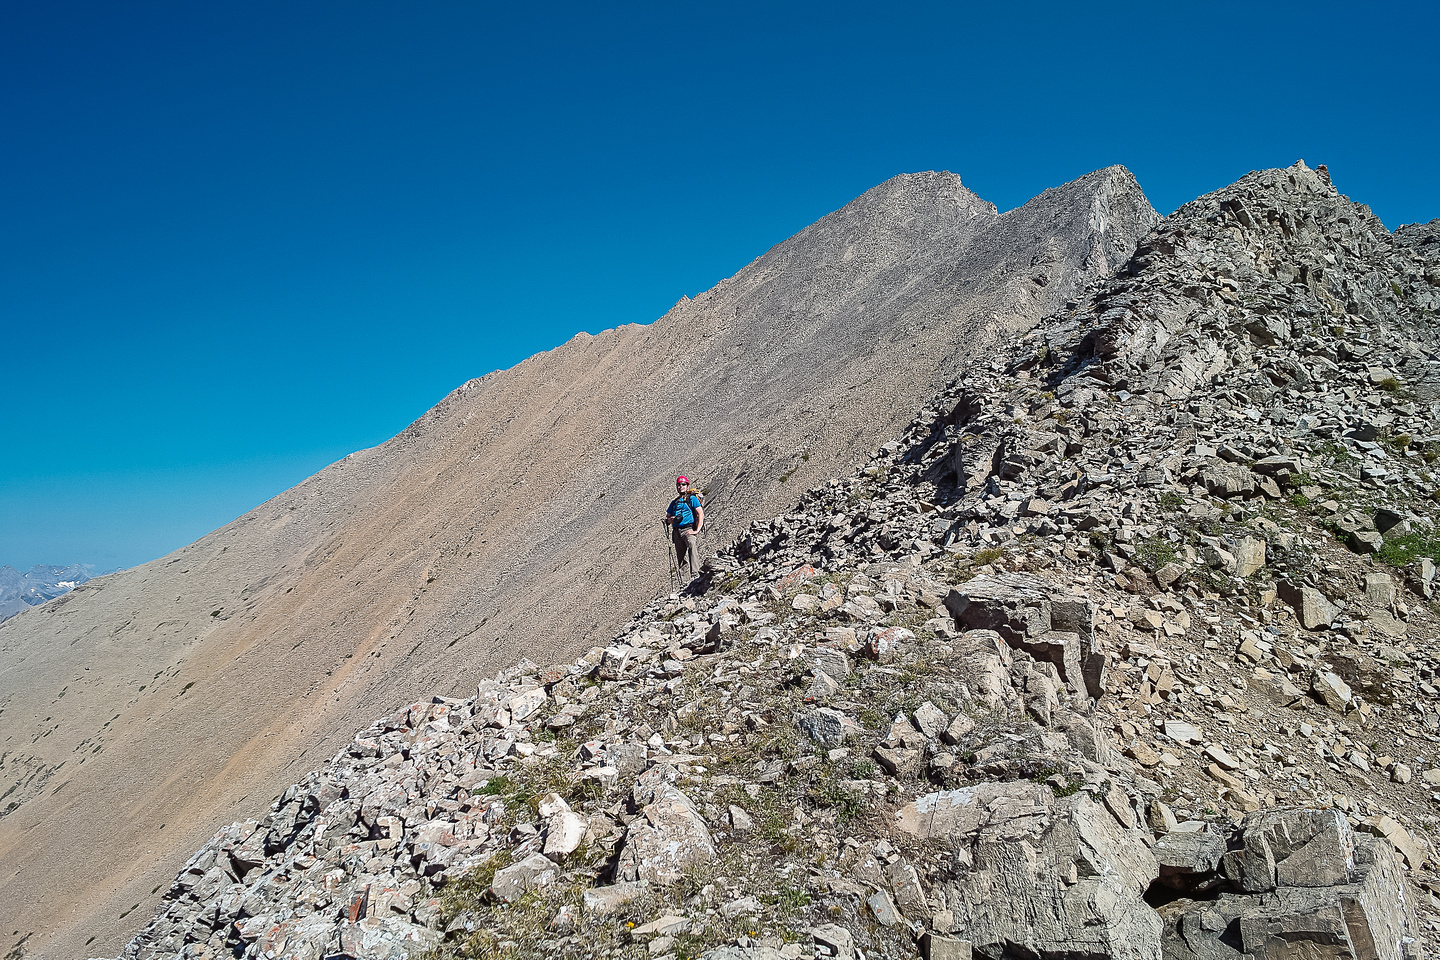 Wietse on the traverse with Cegfns in the background.